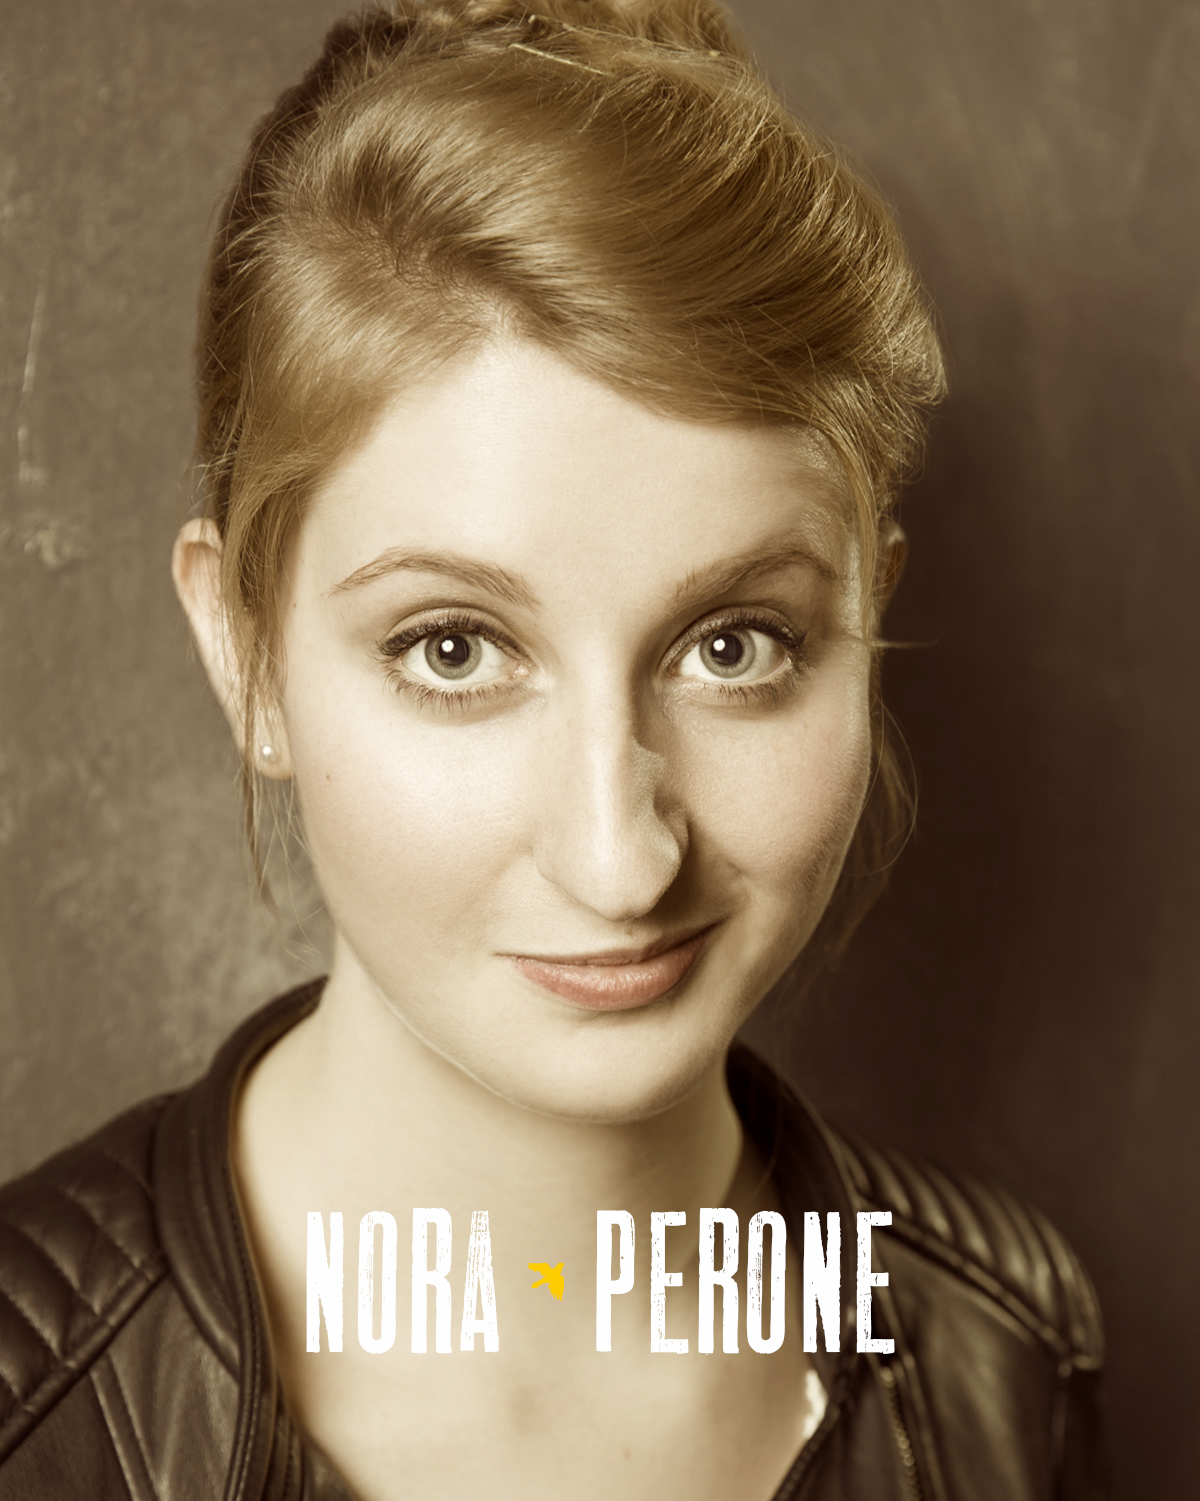 NORA PERONE  (Ensemble) is a London-based performer, producer, and acting coach. WVPT credits:  The Last Five Years  (Cathy Hiatt), 2018 BroadwayWorld Regional Award for Best Musical;  It's a Wonderful Life  (Cousin Tilly/ Mrs. Hatch/ Assistant Director);  Storming Heaven: The Musical  staged reading (Ensemble). UK credits include:  Ordinary Days , London & Edinburgh Fringe;  It's Only Murder , UK premiere;  Crazy Ex-Fangirls   (and boys) , world premiere.   Training: BFA Acting (West Virginia University); MA Music Theatre (Royal Central School of Speech and Drama). Nora is delighted to re-join the WVPT team this summer!  @norassic_park   www.noraperone.com